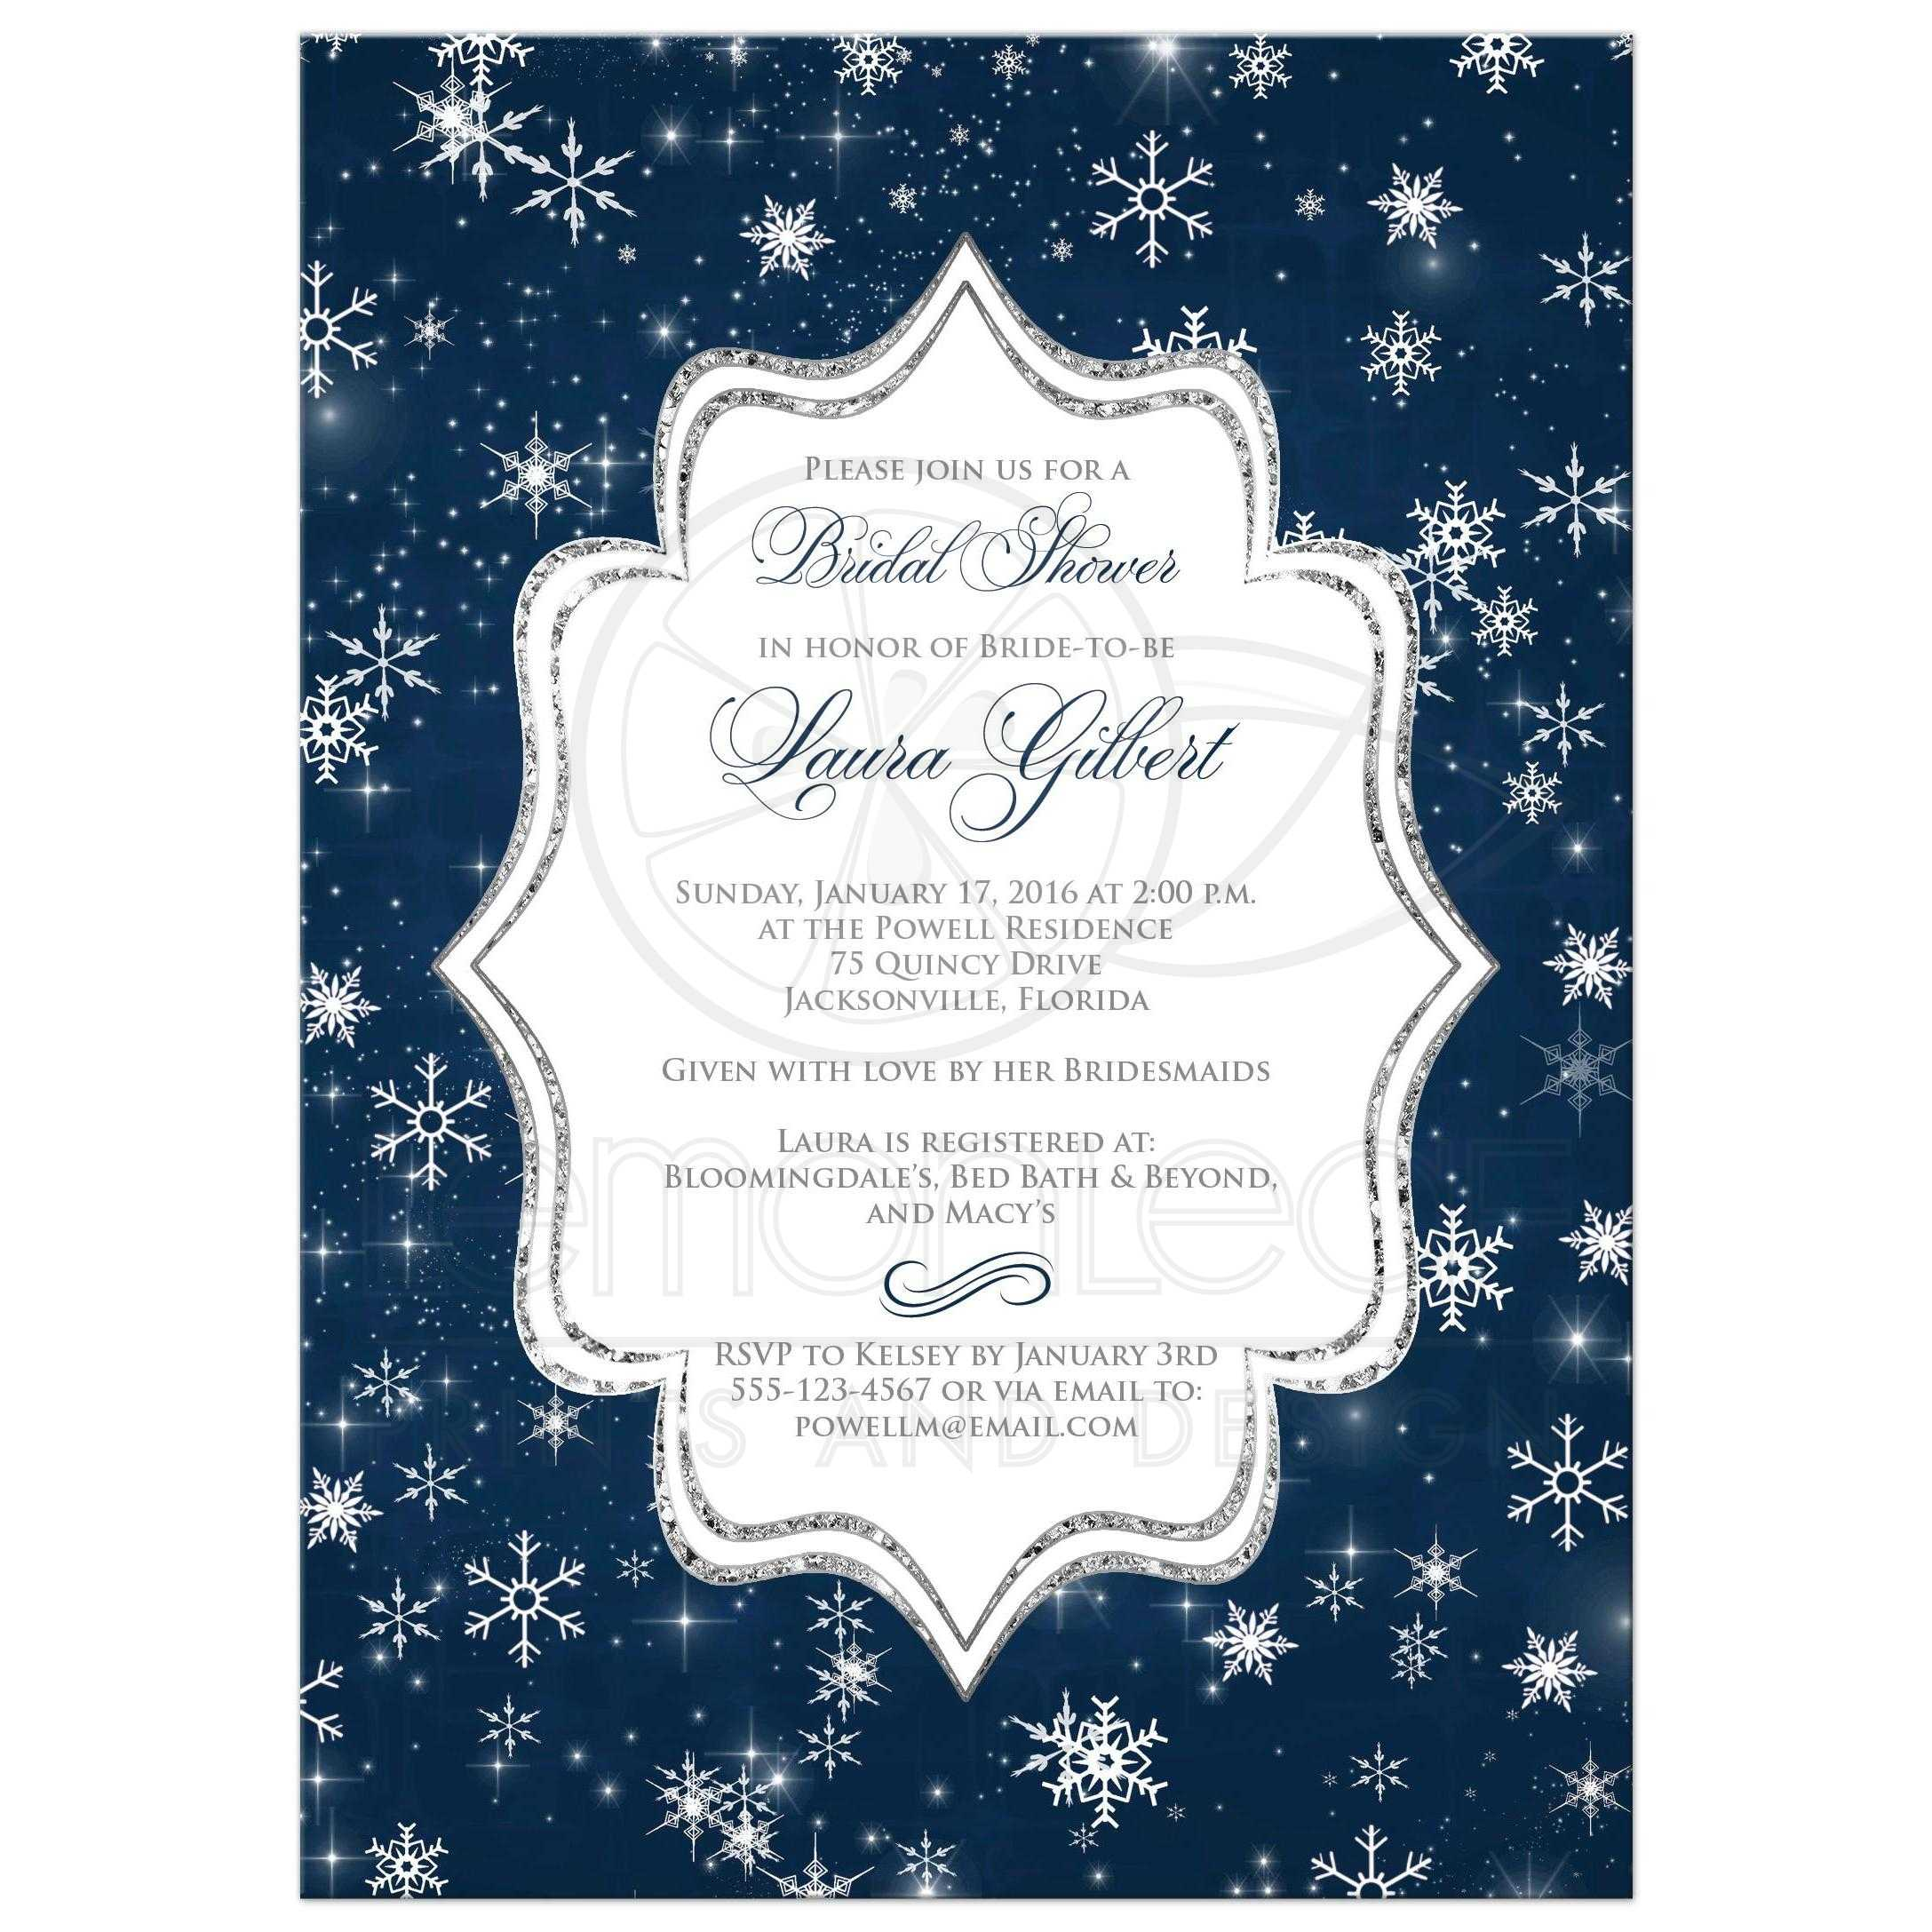 Winter Bridal Shower Invitation | A Wintry Night | Navy, White ...